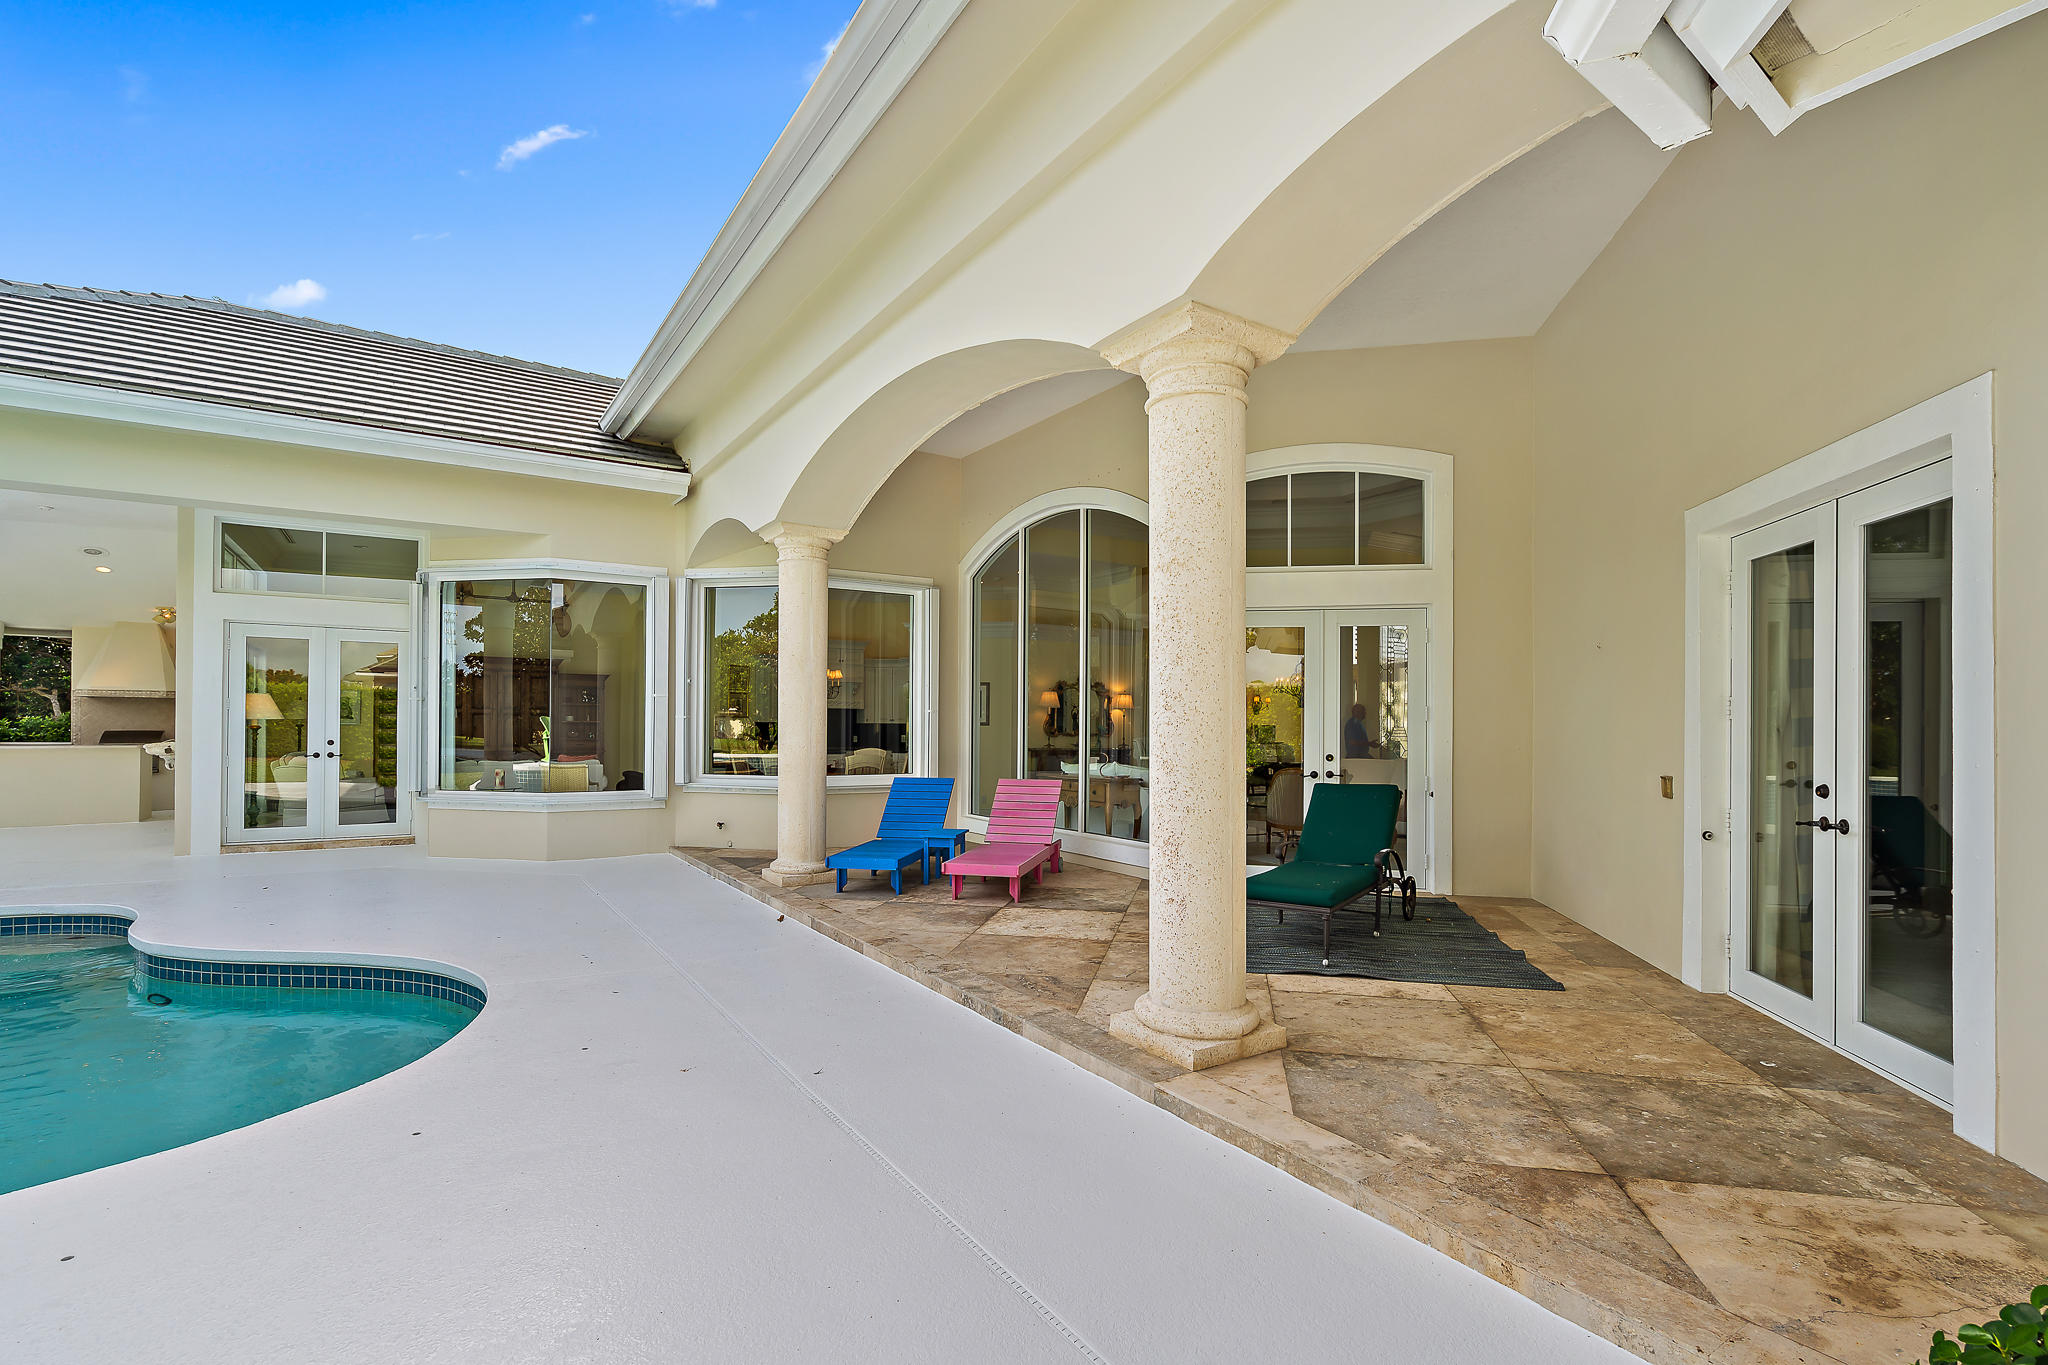 JUPITER HILLS VILLAGE PHASE VI, LOT 8